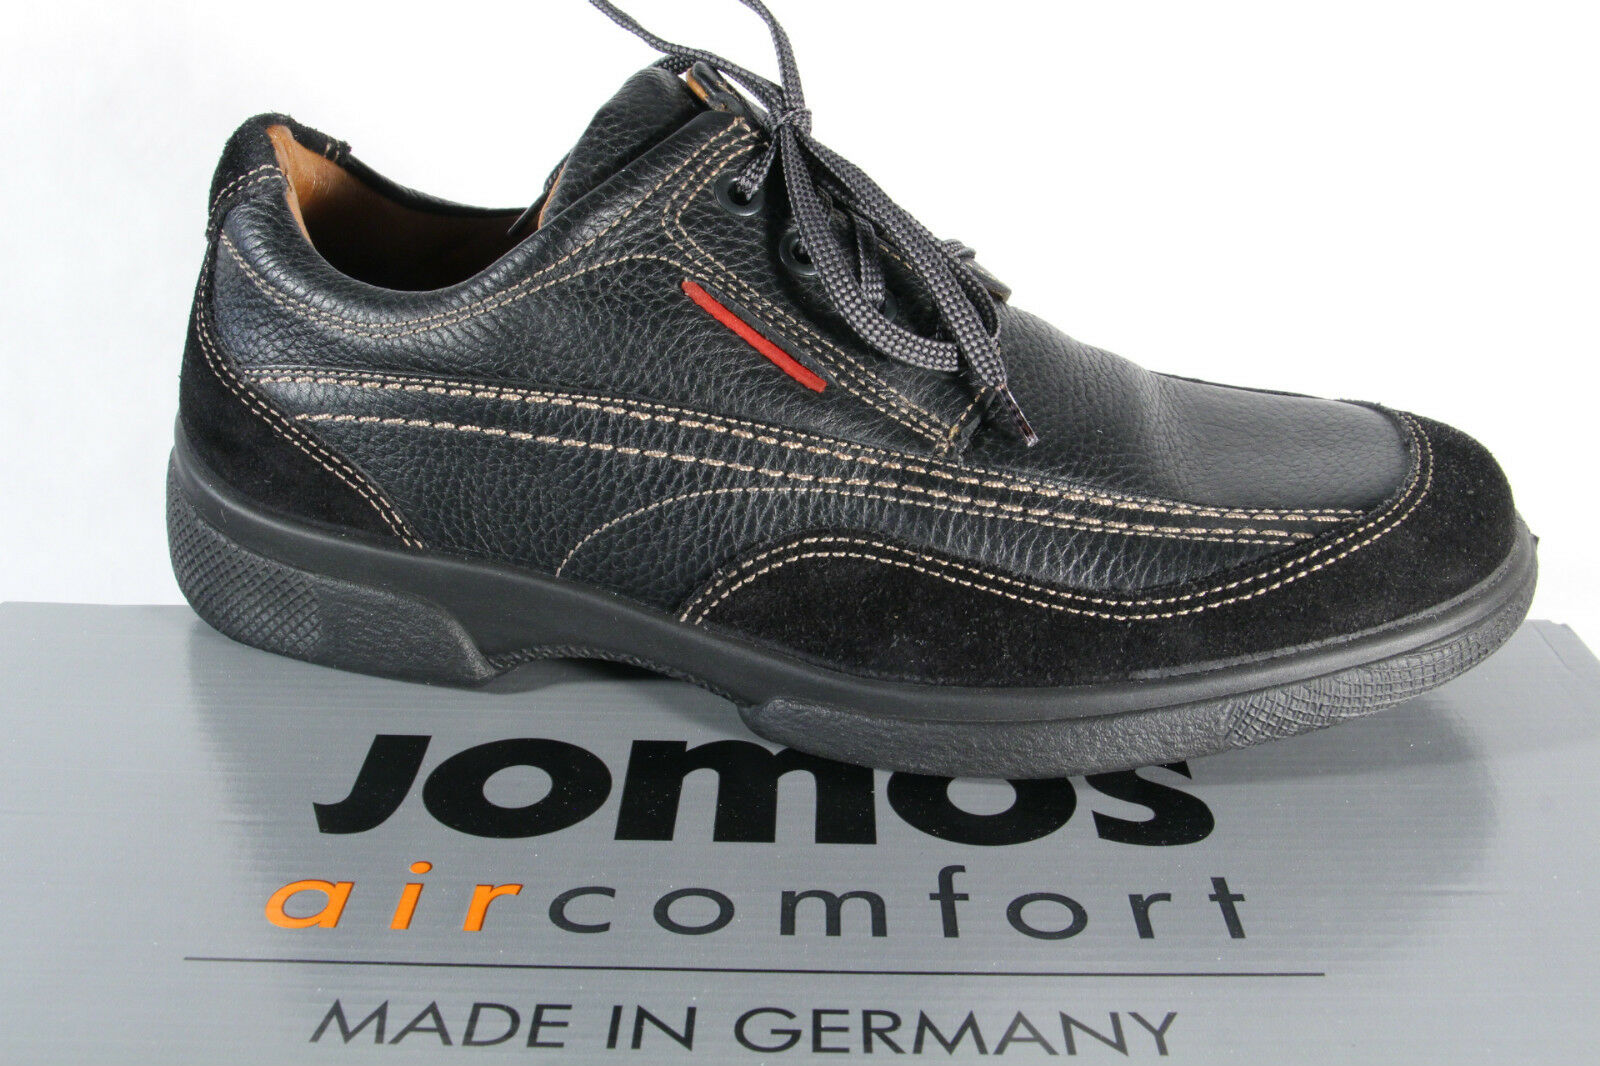 Jomos Zapato bajo Zapatillas Negro Transpirable Plantillas Intercambiables 23344